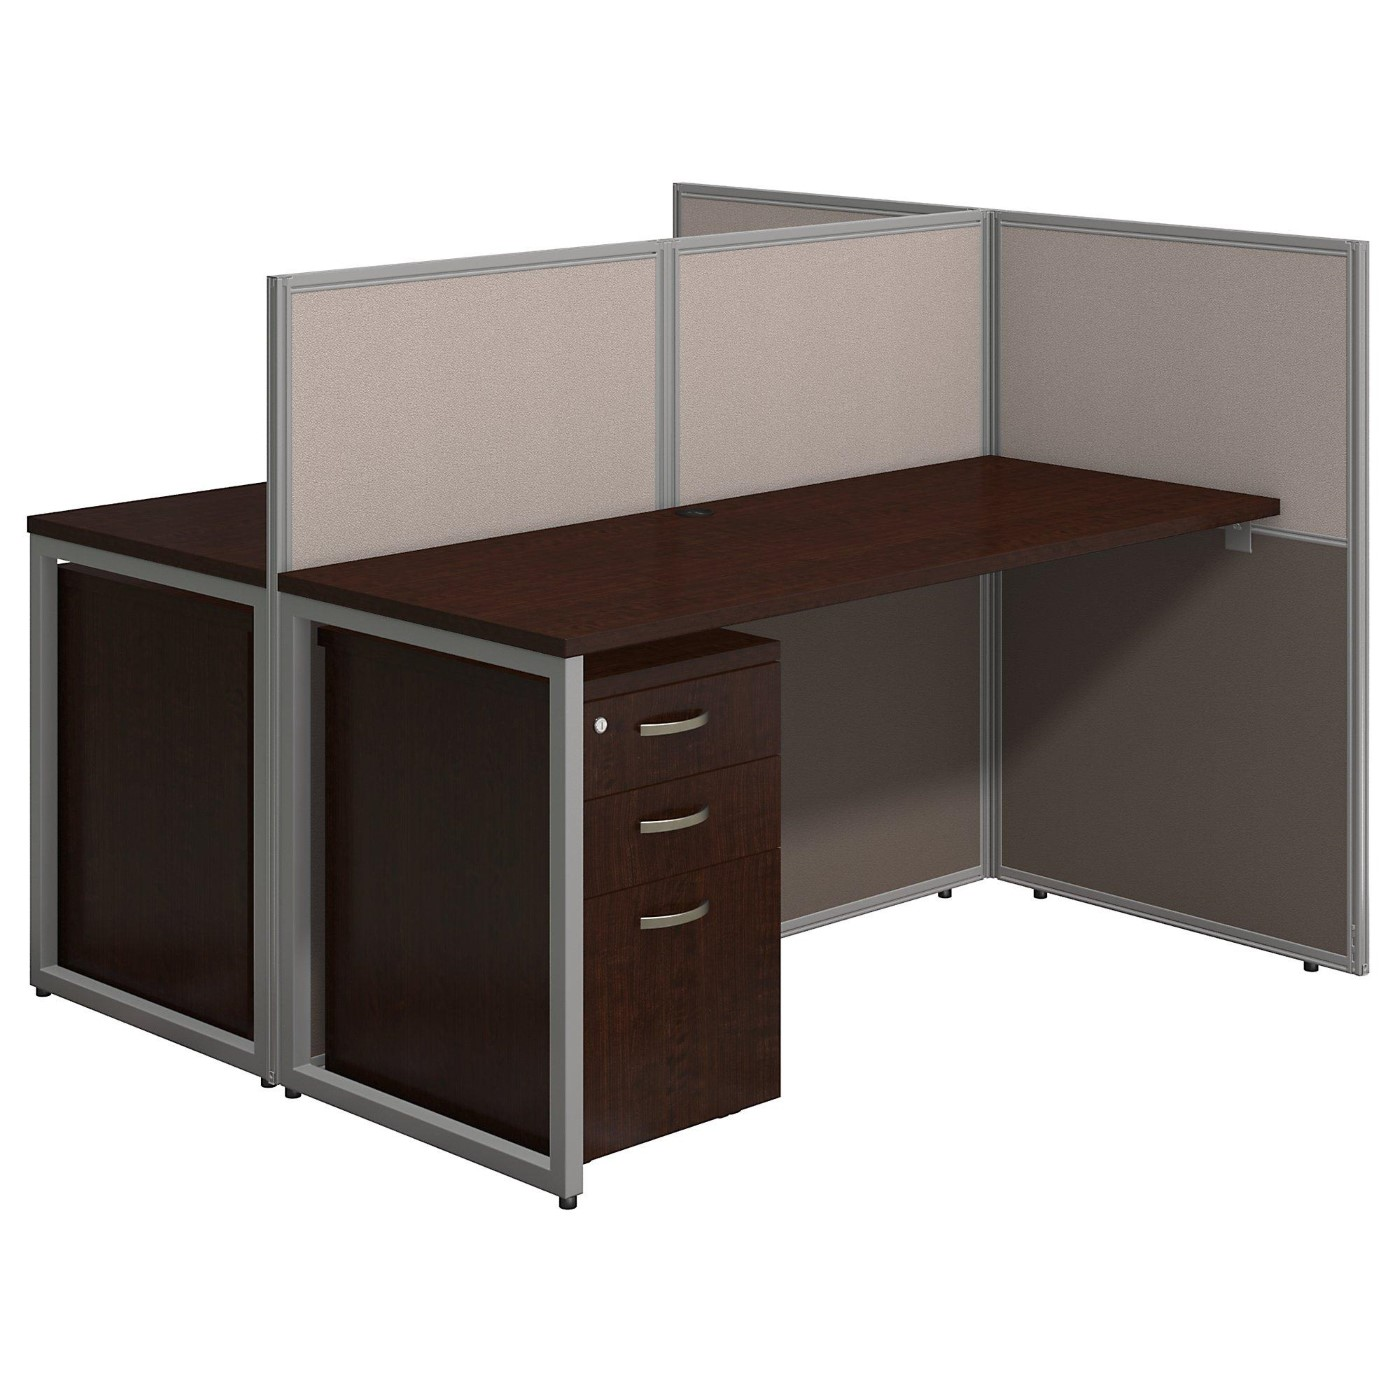 BUSH BUSINESS FURNITURE EASY OFFICE 60W TWO PERSON STRAIGHT DESK OPEN OFFICE WITH MOBILE FILE CABINETS. FREE SHIPPING.